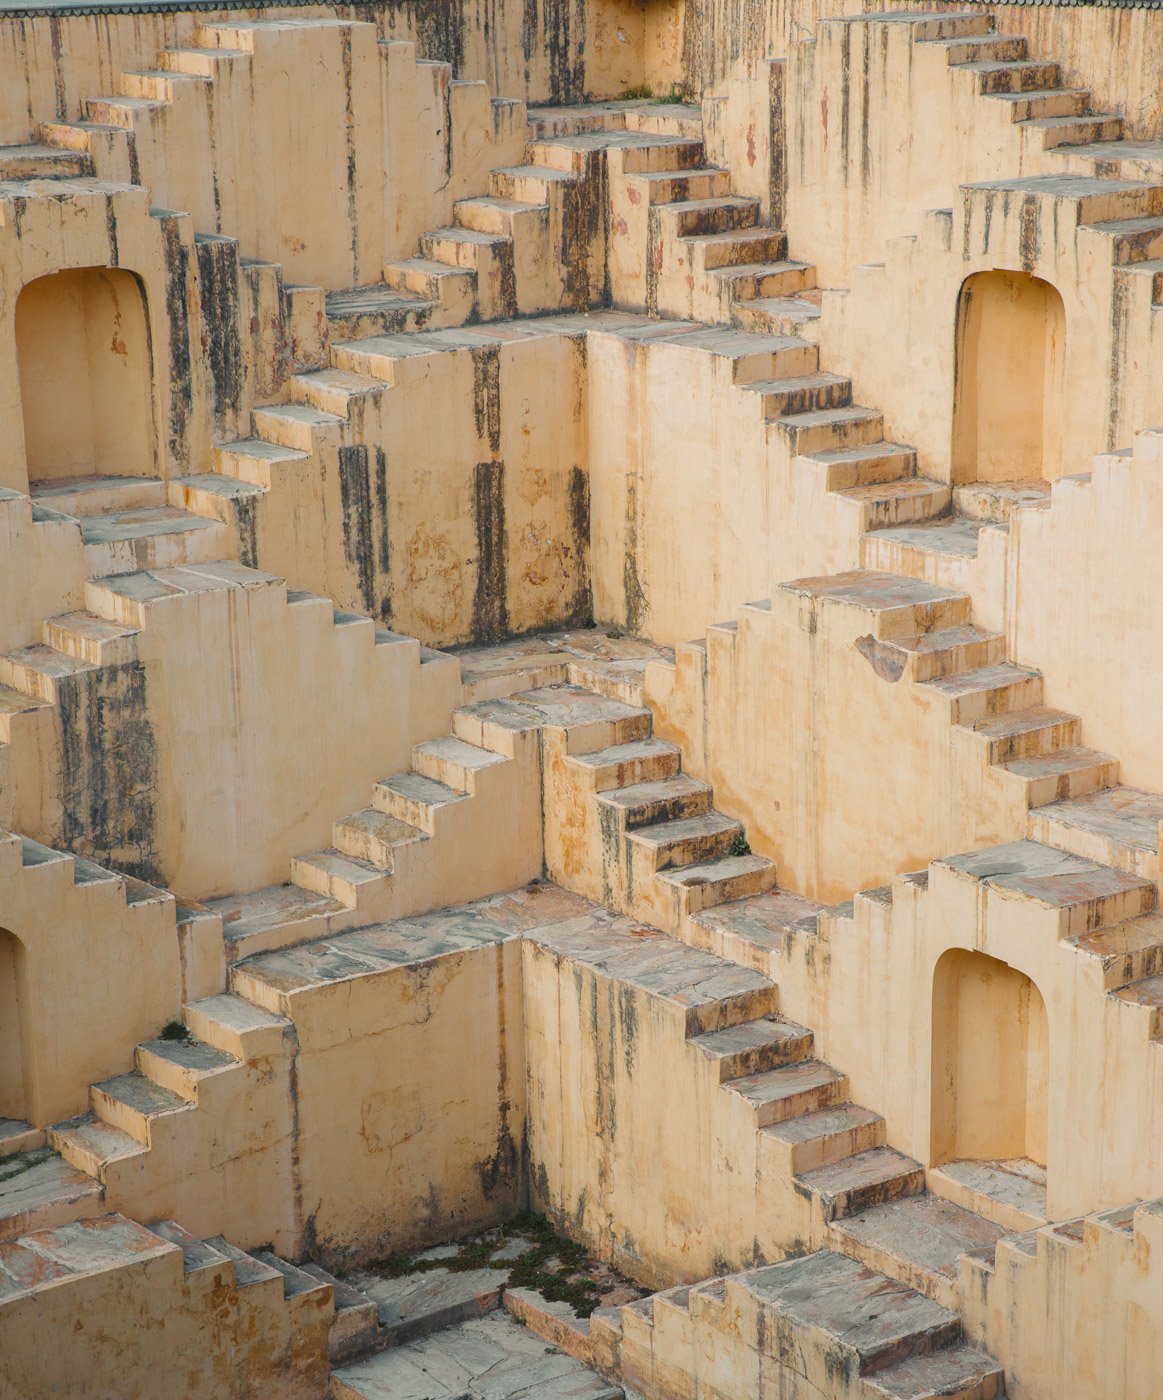 HOW TO GET TO THE JAIPUR STEPWELL